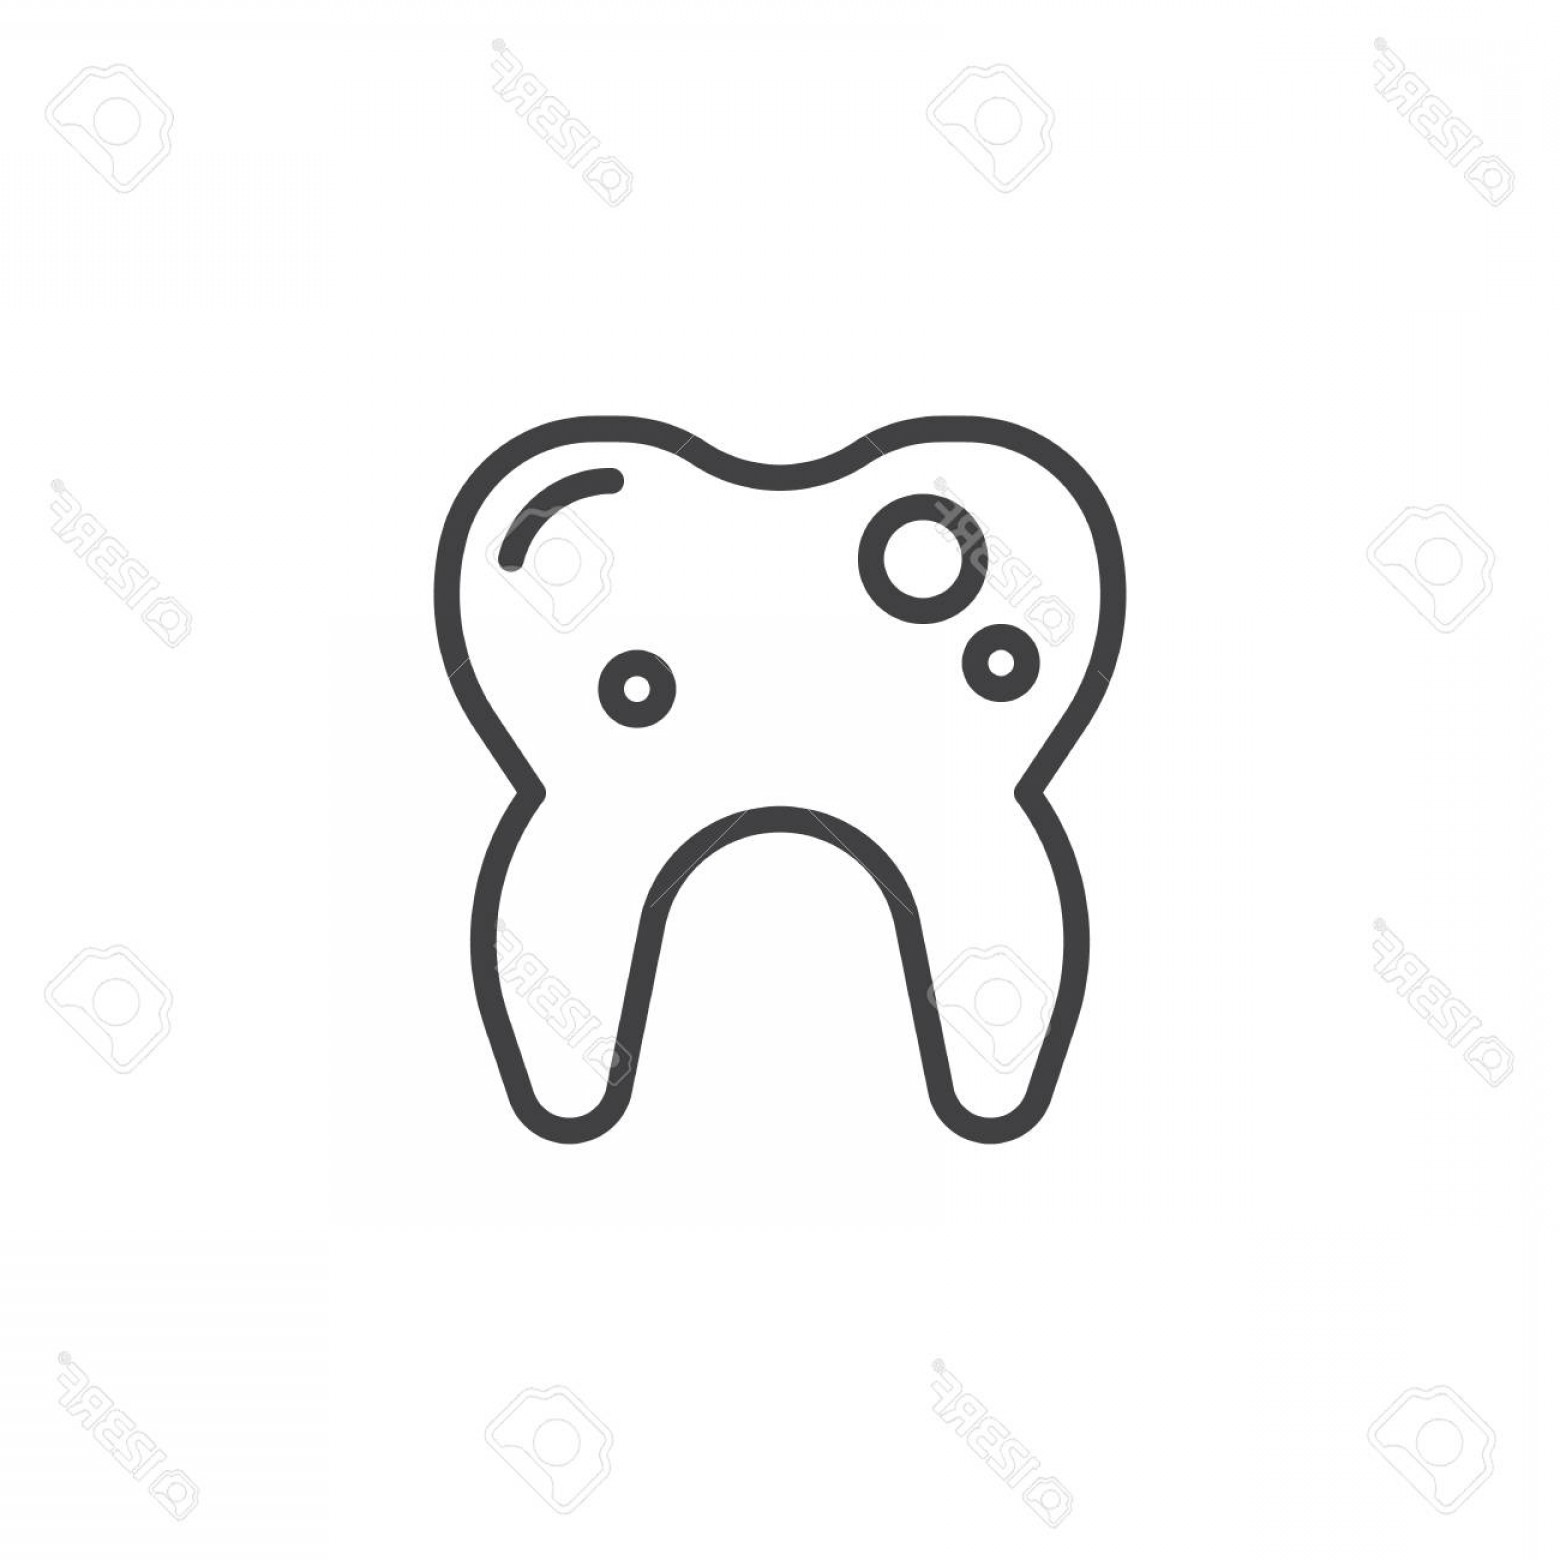 Tooth Outline Vector: Photostock Vector Tooth With Caries Line Icon Outline Vector Sign Linear Style Pictogram Isolated On White Damage Toot